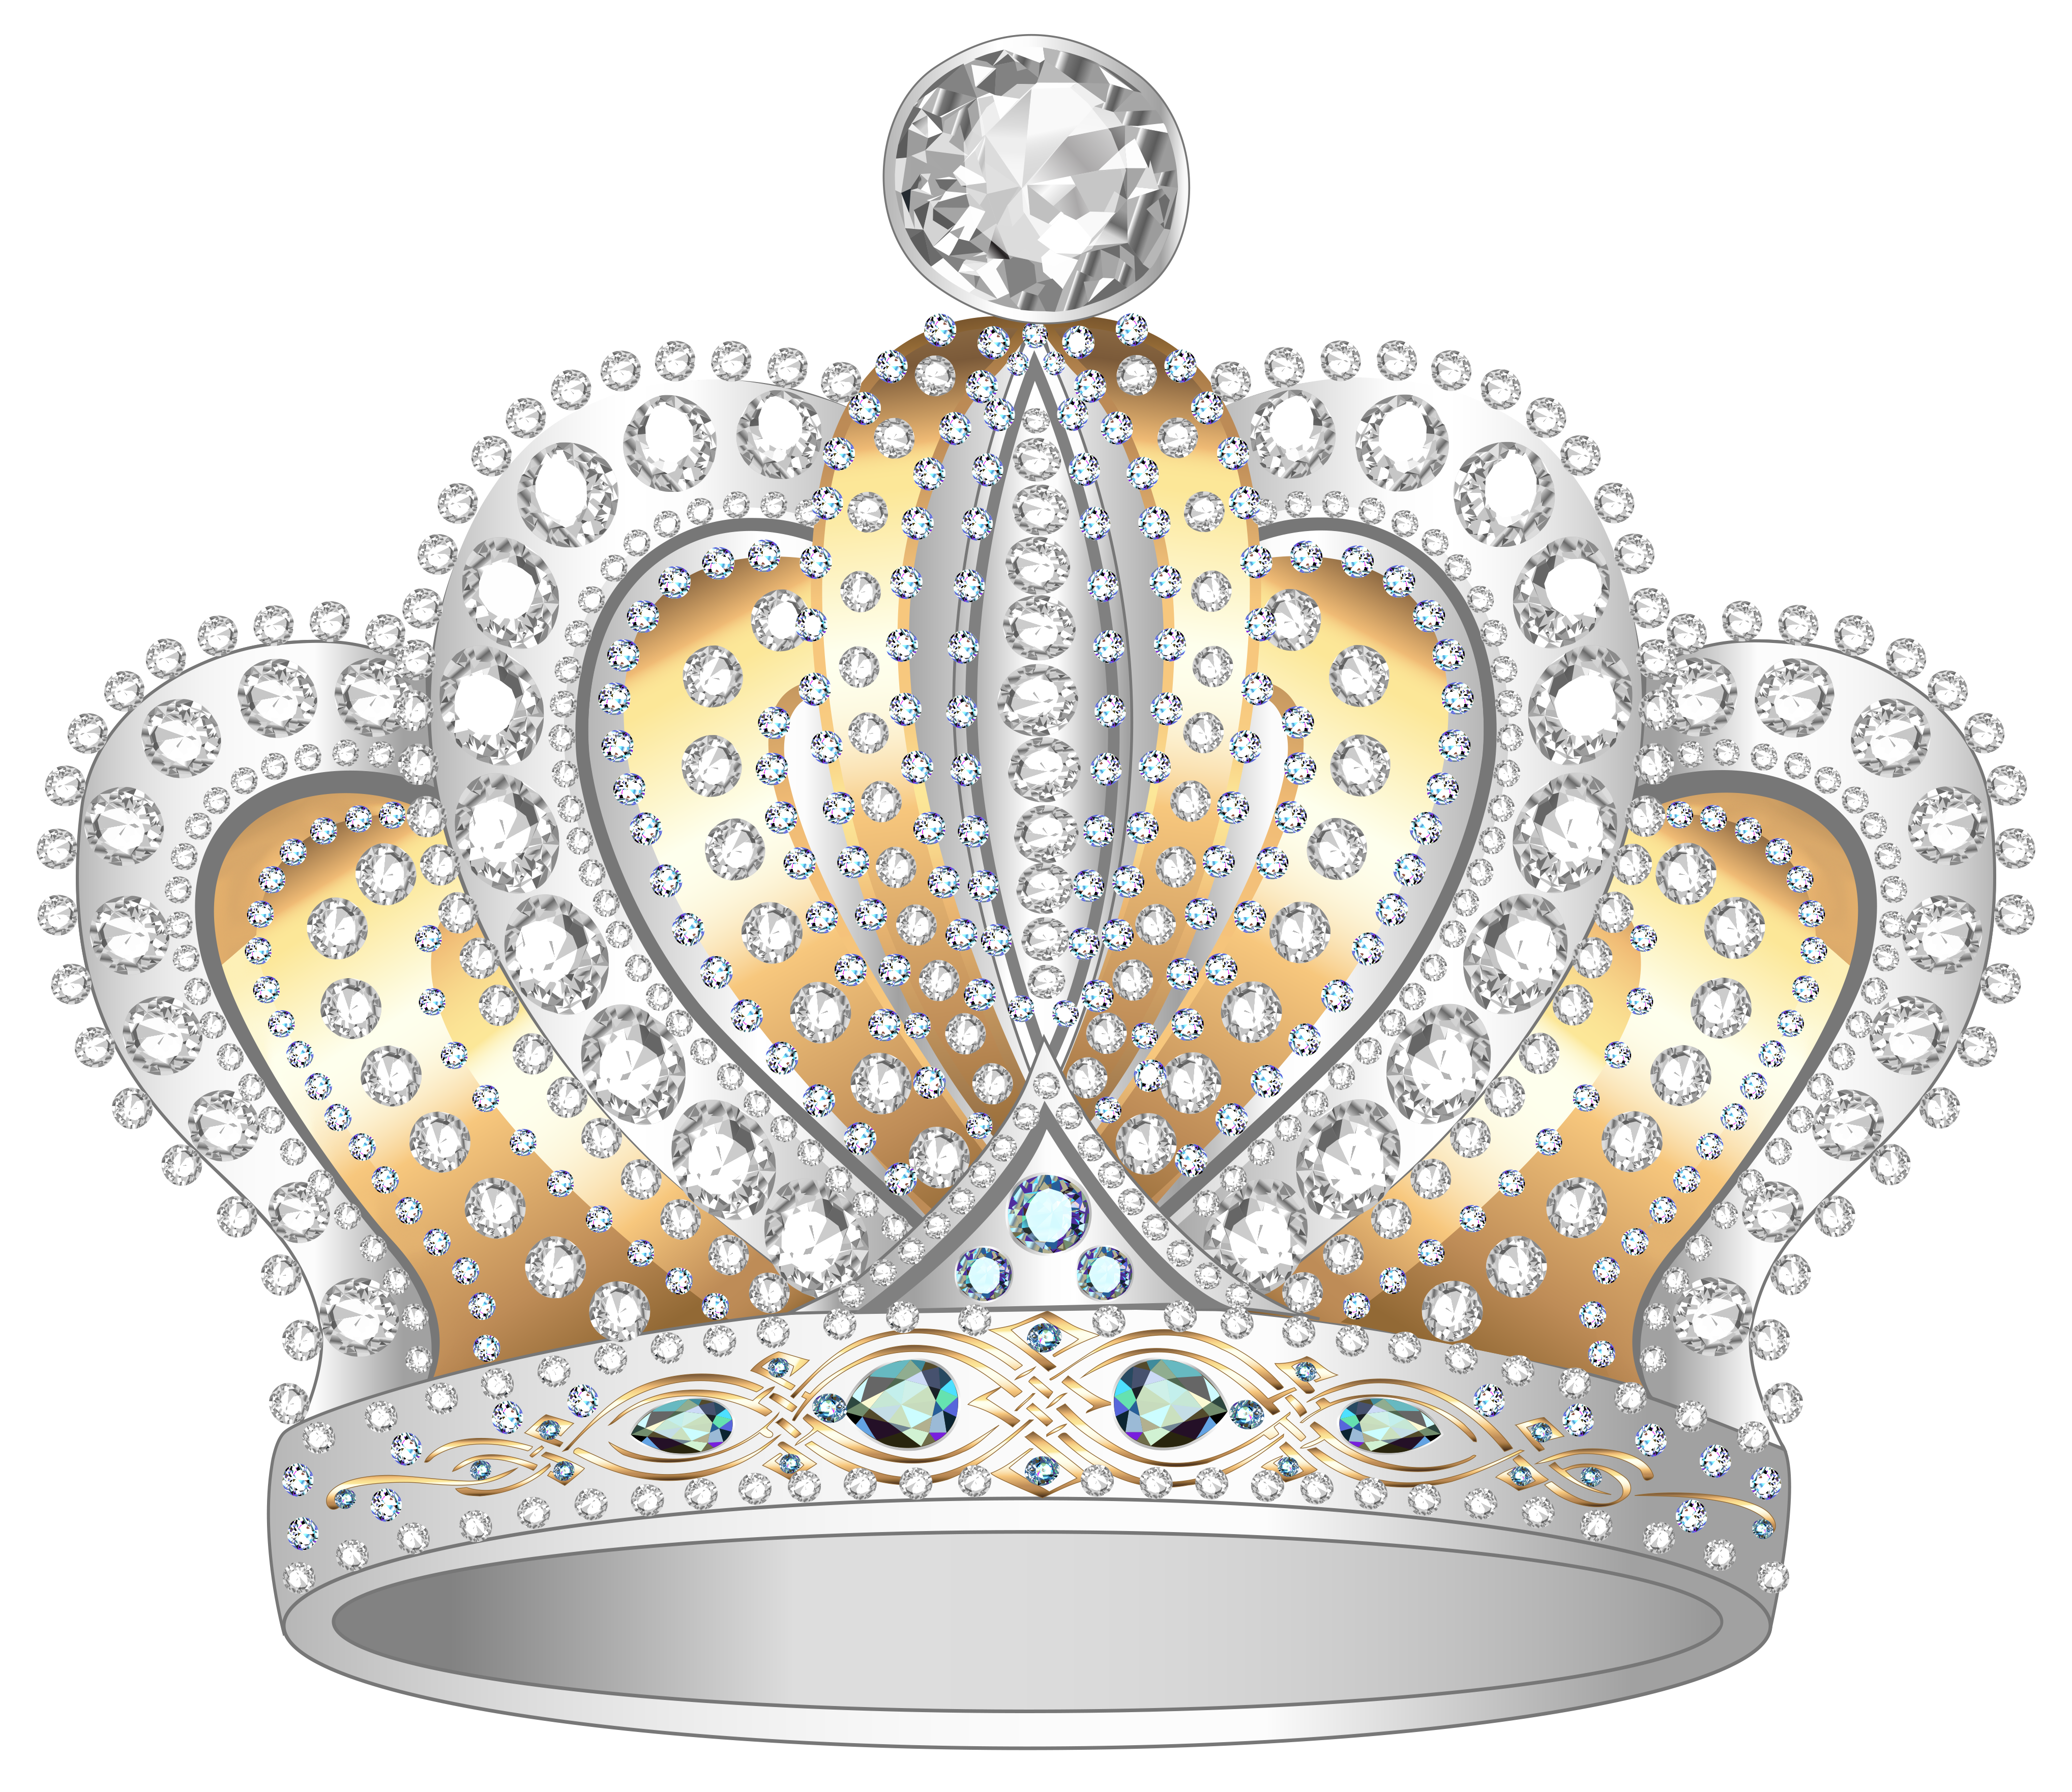 Silver shine crown clipart png transparent stock Crown Diamond Clip art - Silver Gold Diamond Crown PNG Clipart Image ... png transparent stock